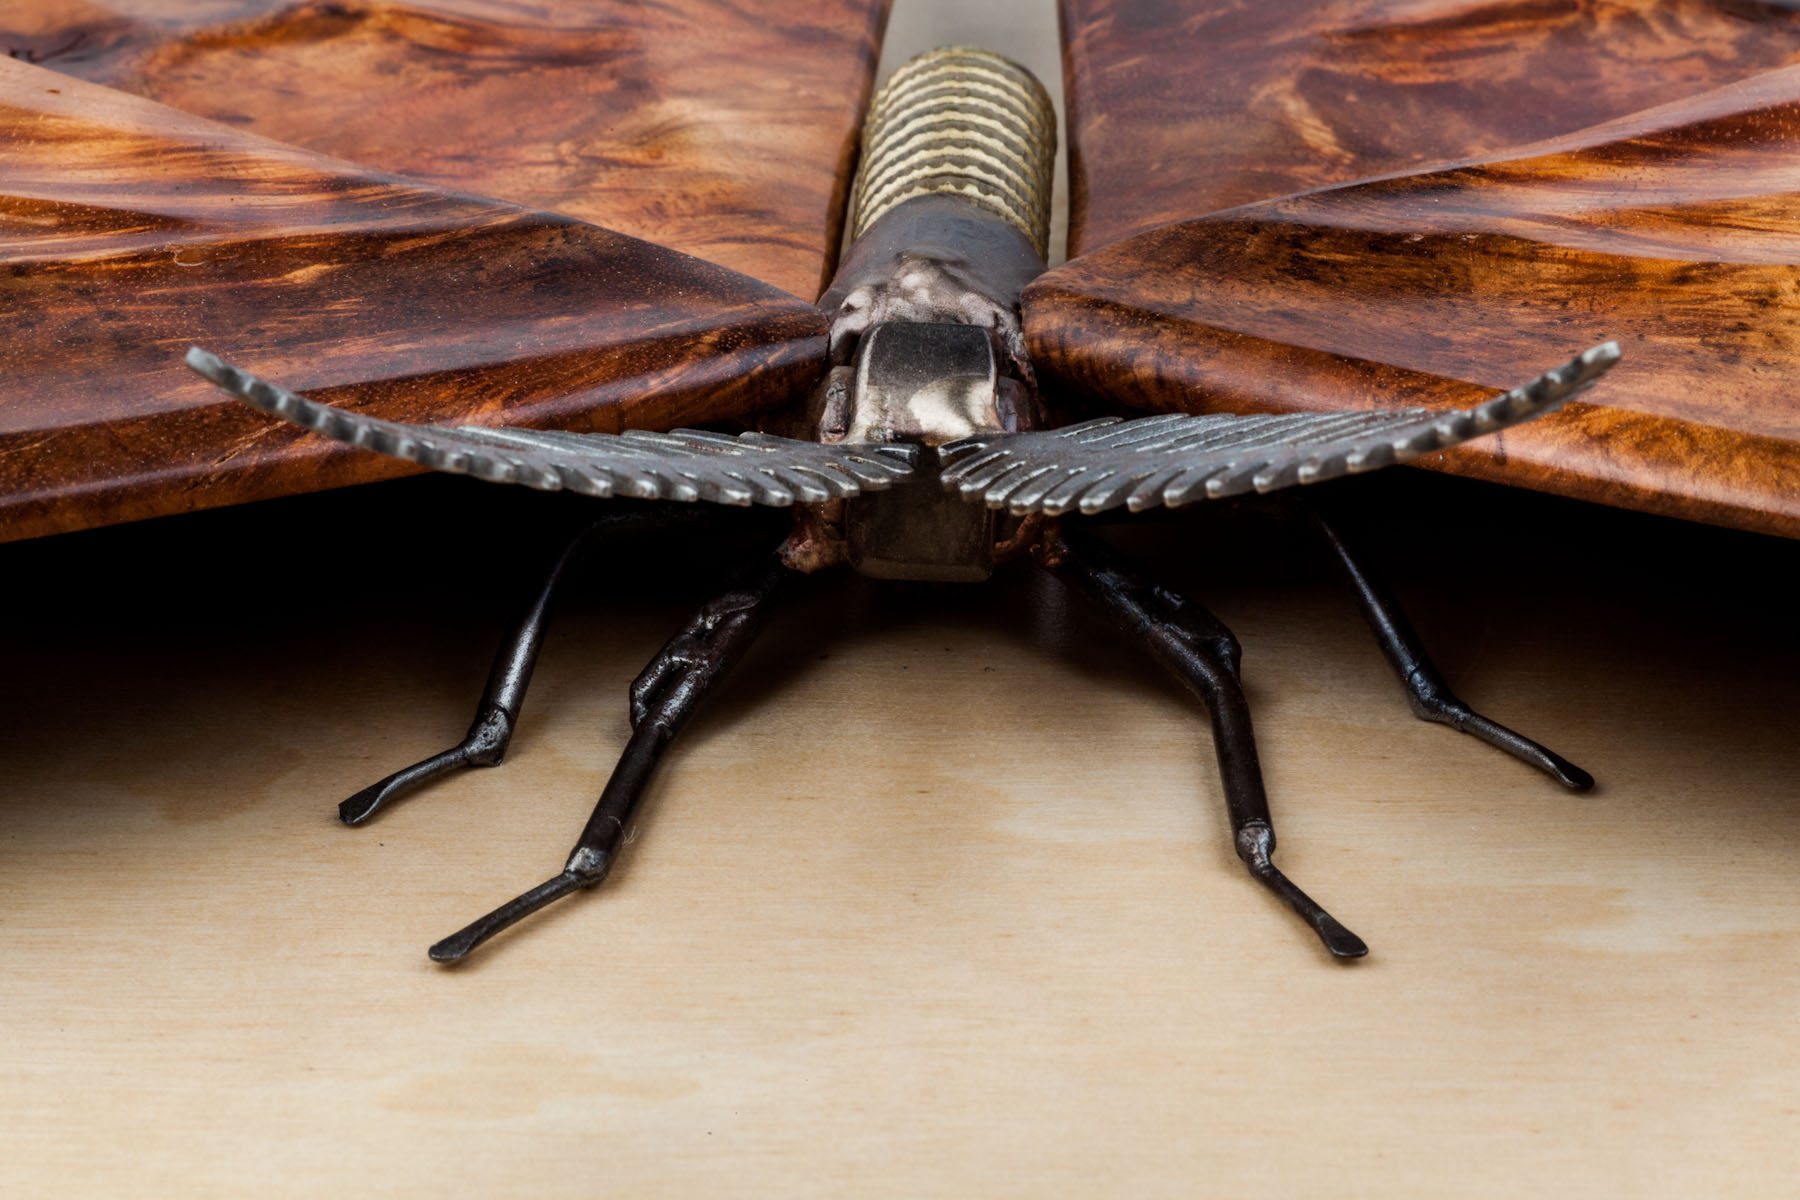 insect sculptor